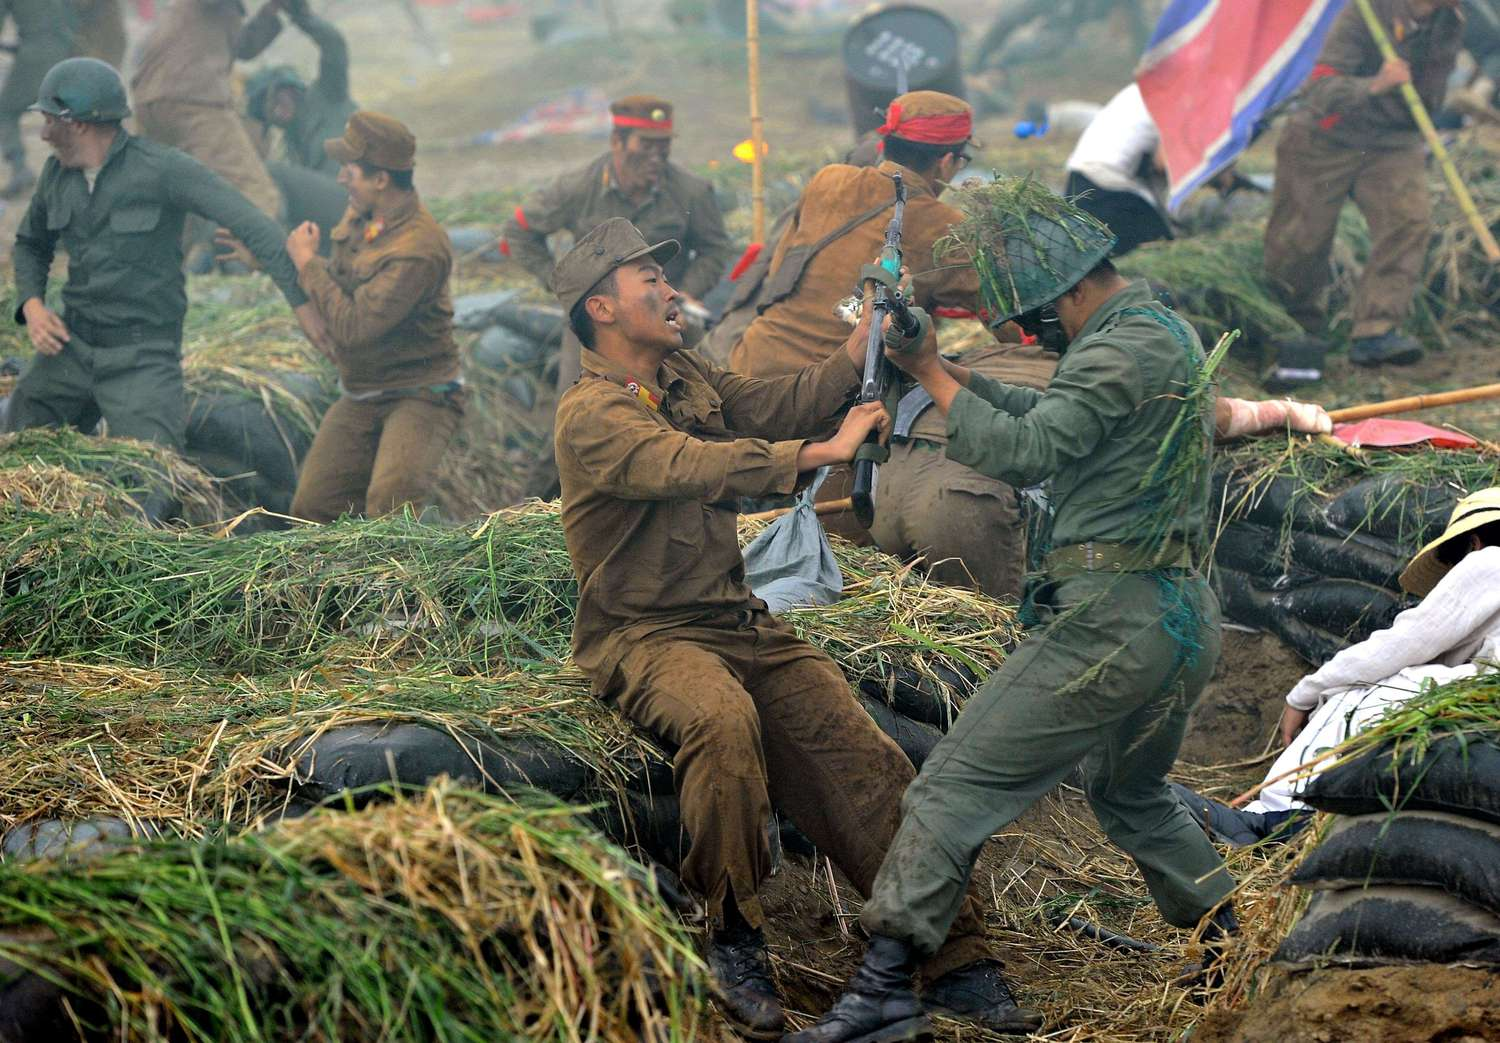 SKOREA-NKOREA-MILITARY-BATTLE